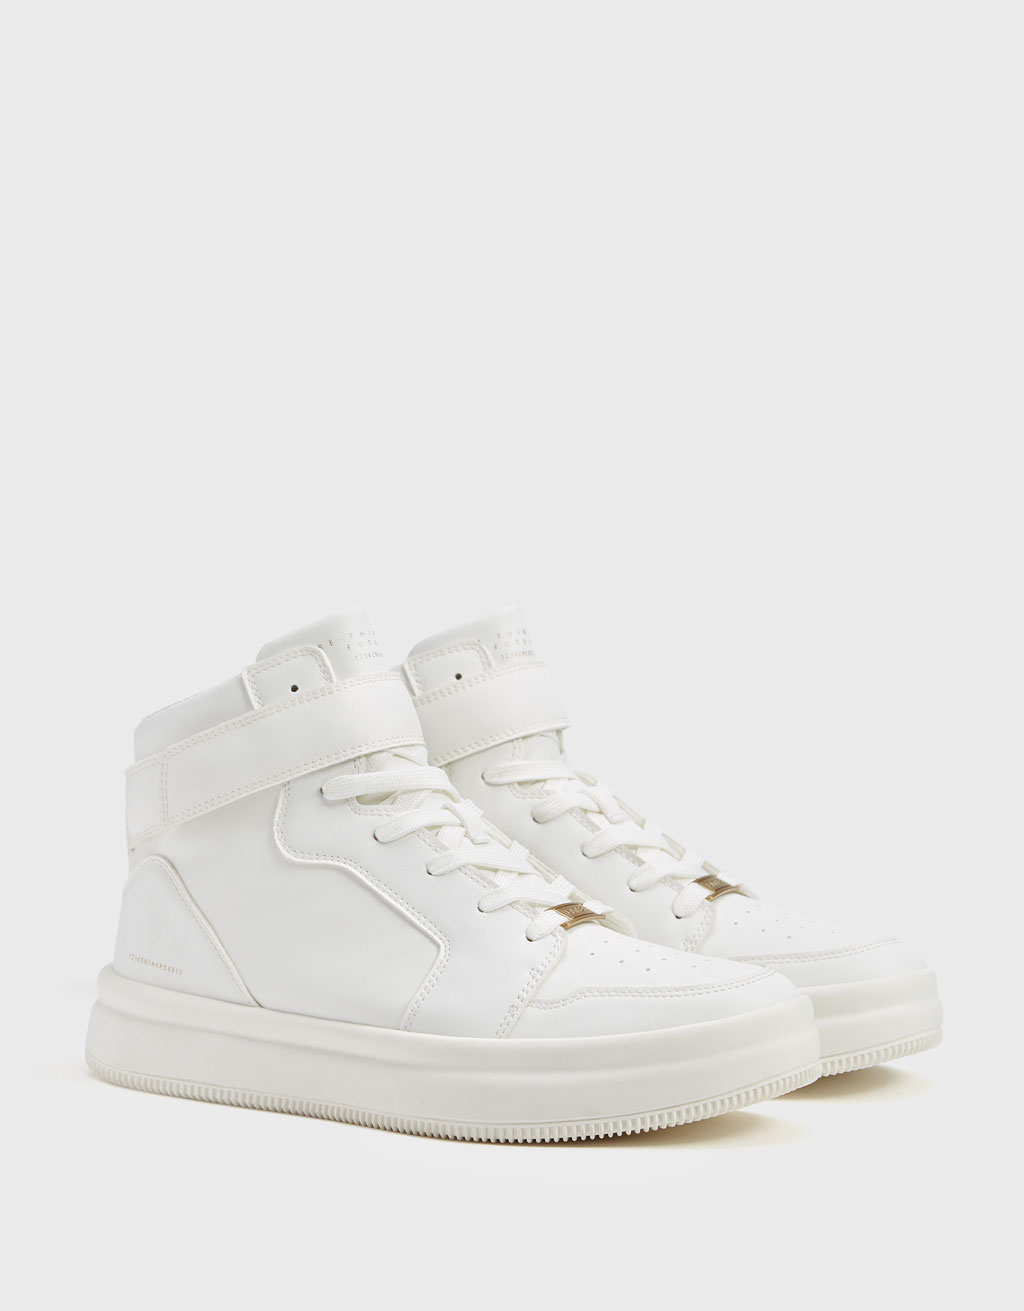 Men's basketball high-top trainers